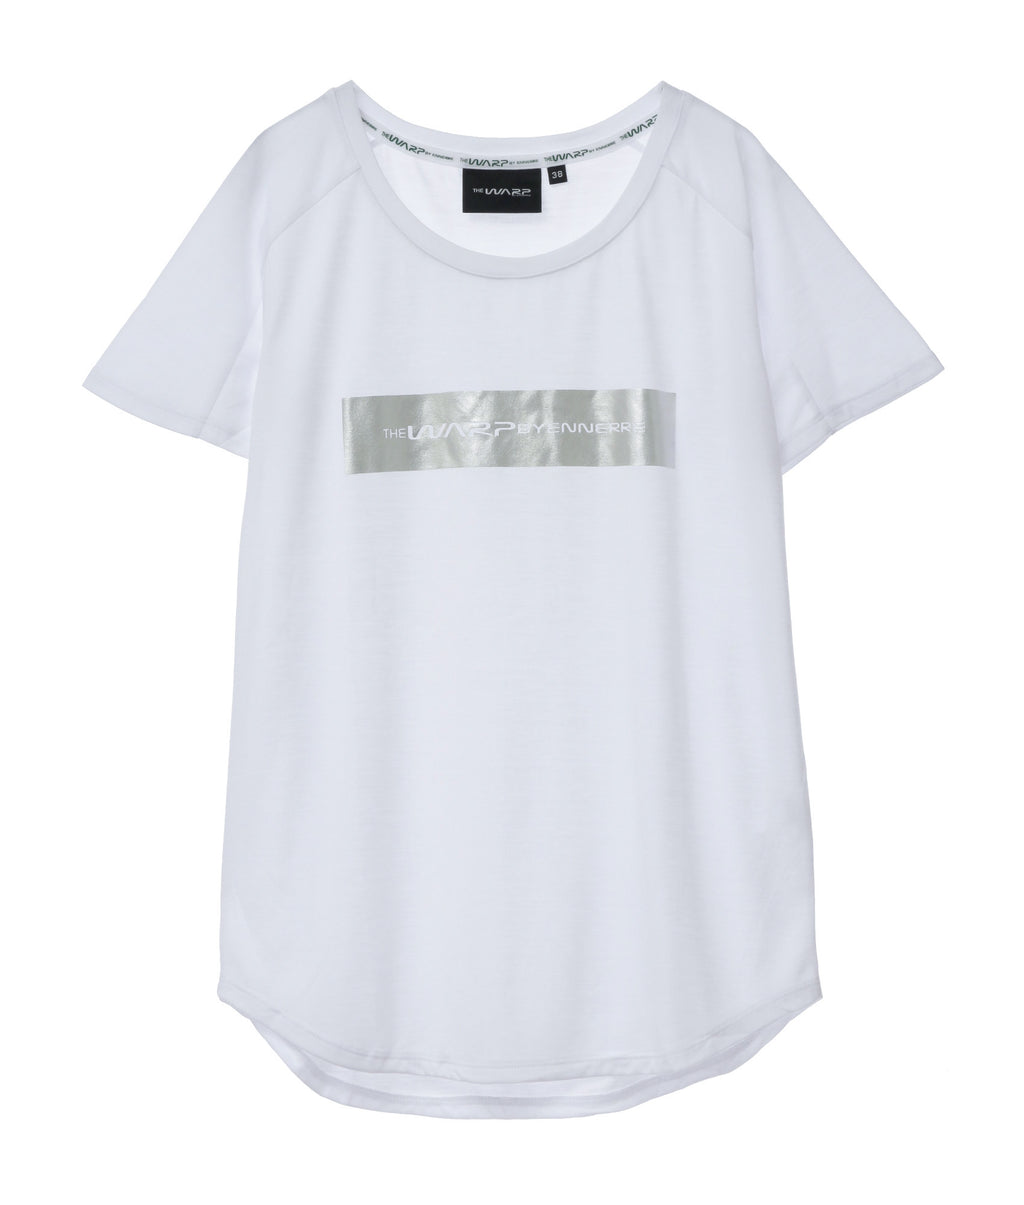 SS Graphic T (Small Square)